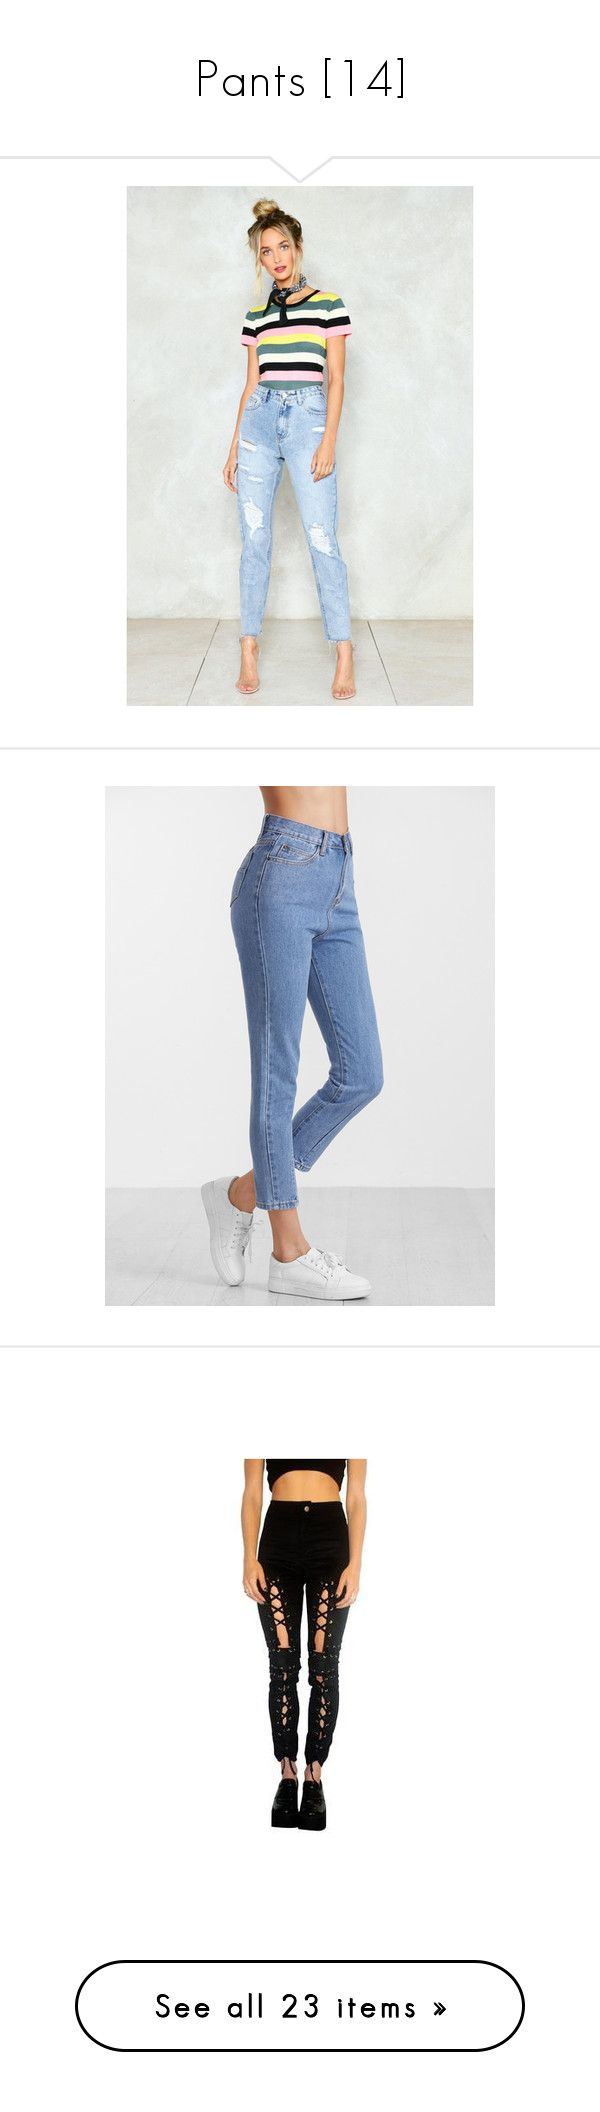 """""""Pants [14]"""" by gdavilla ❤ liked on Polyvore featuring jeans, blue, blue high waisted jeans, blue denim jeans, high waisted distressed jeans, high waisted light wash jeans, high waisted jeans, high waisted denim jeans, cropped denim jeans and highwaist jeans"""